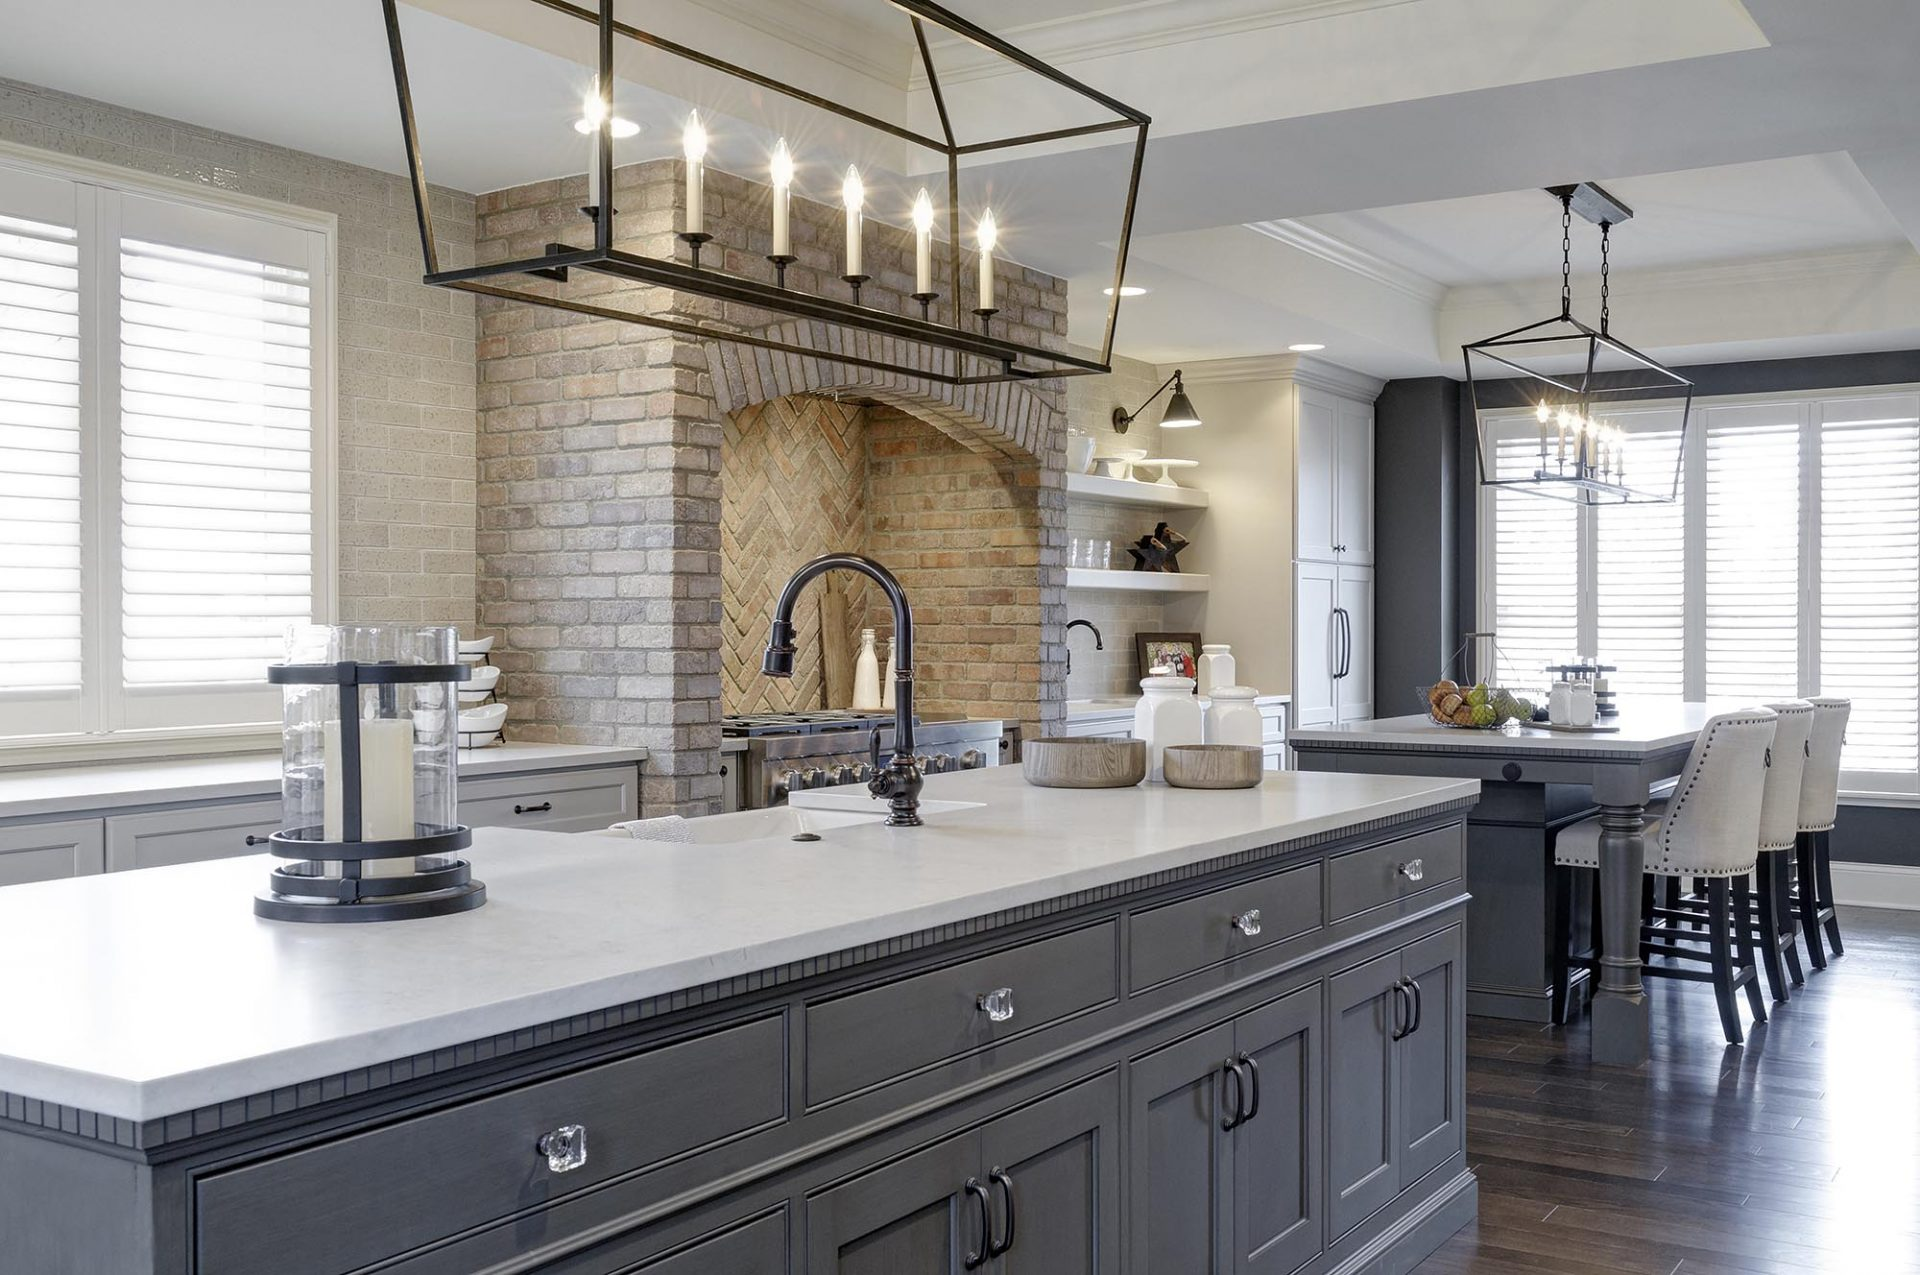 Kitchen renovation, Powell, Dave Fox, Remodel, chandelier, thin brick, large over sized island, quartz, shelving, brick range, white cabinets